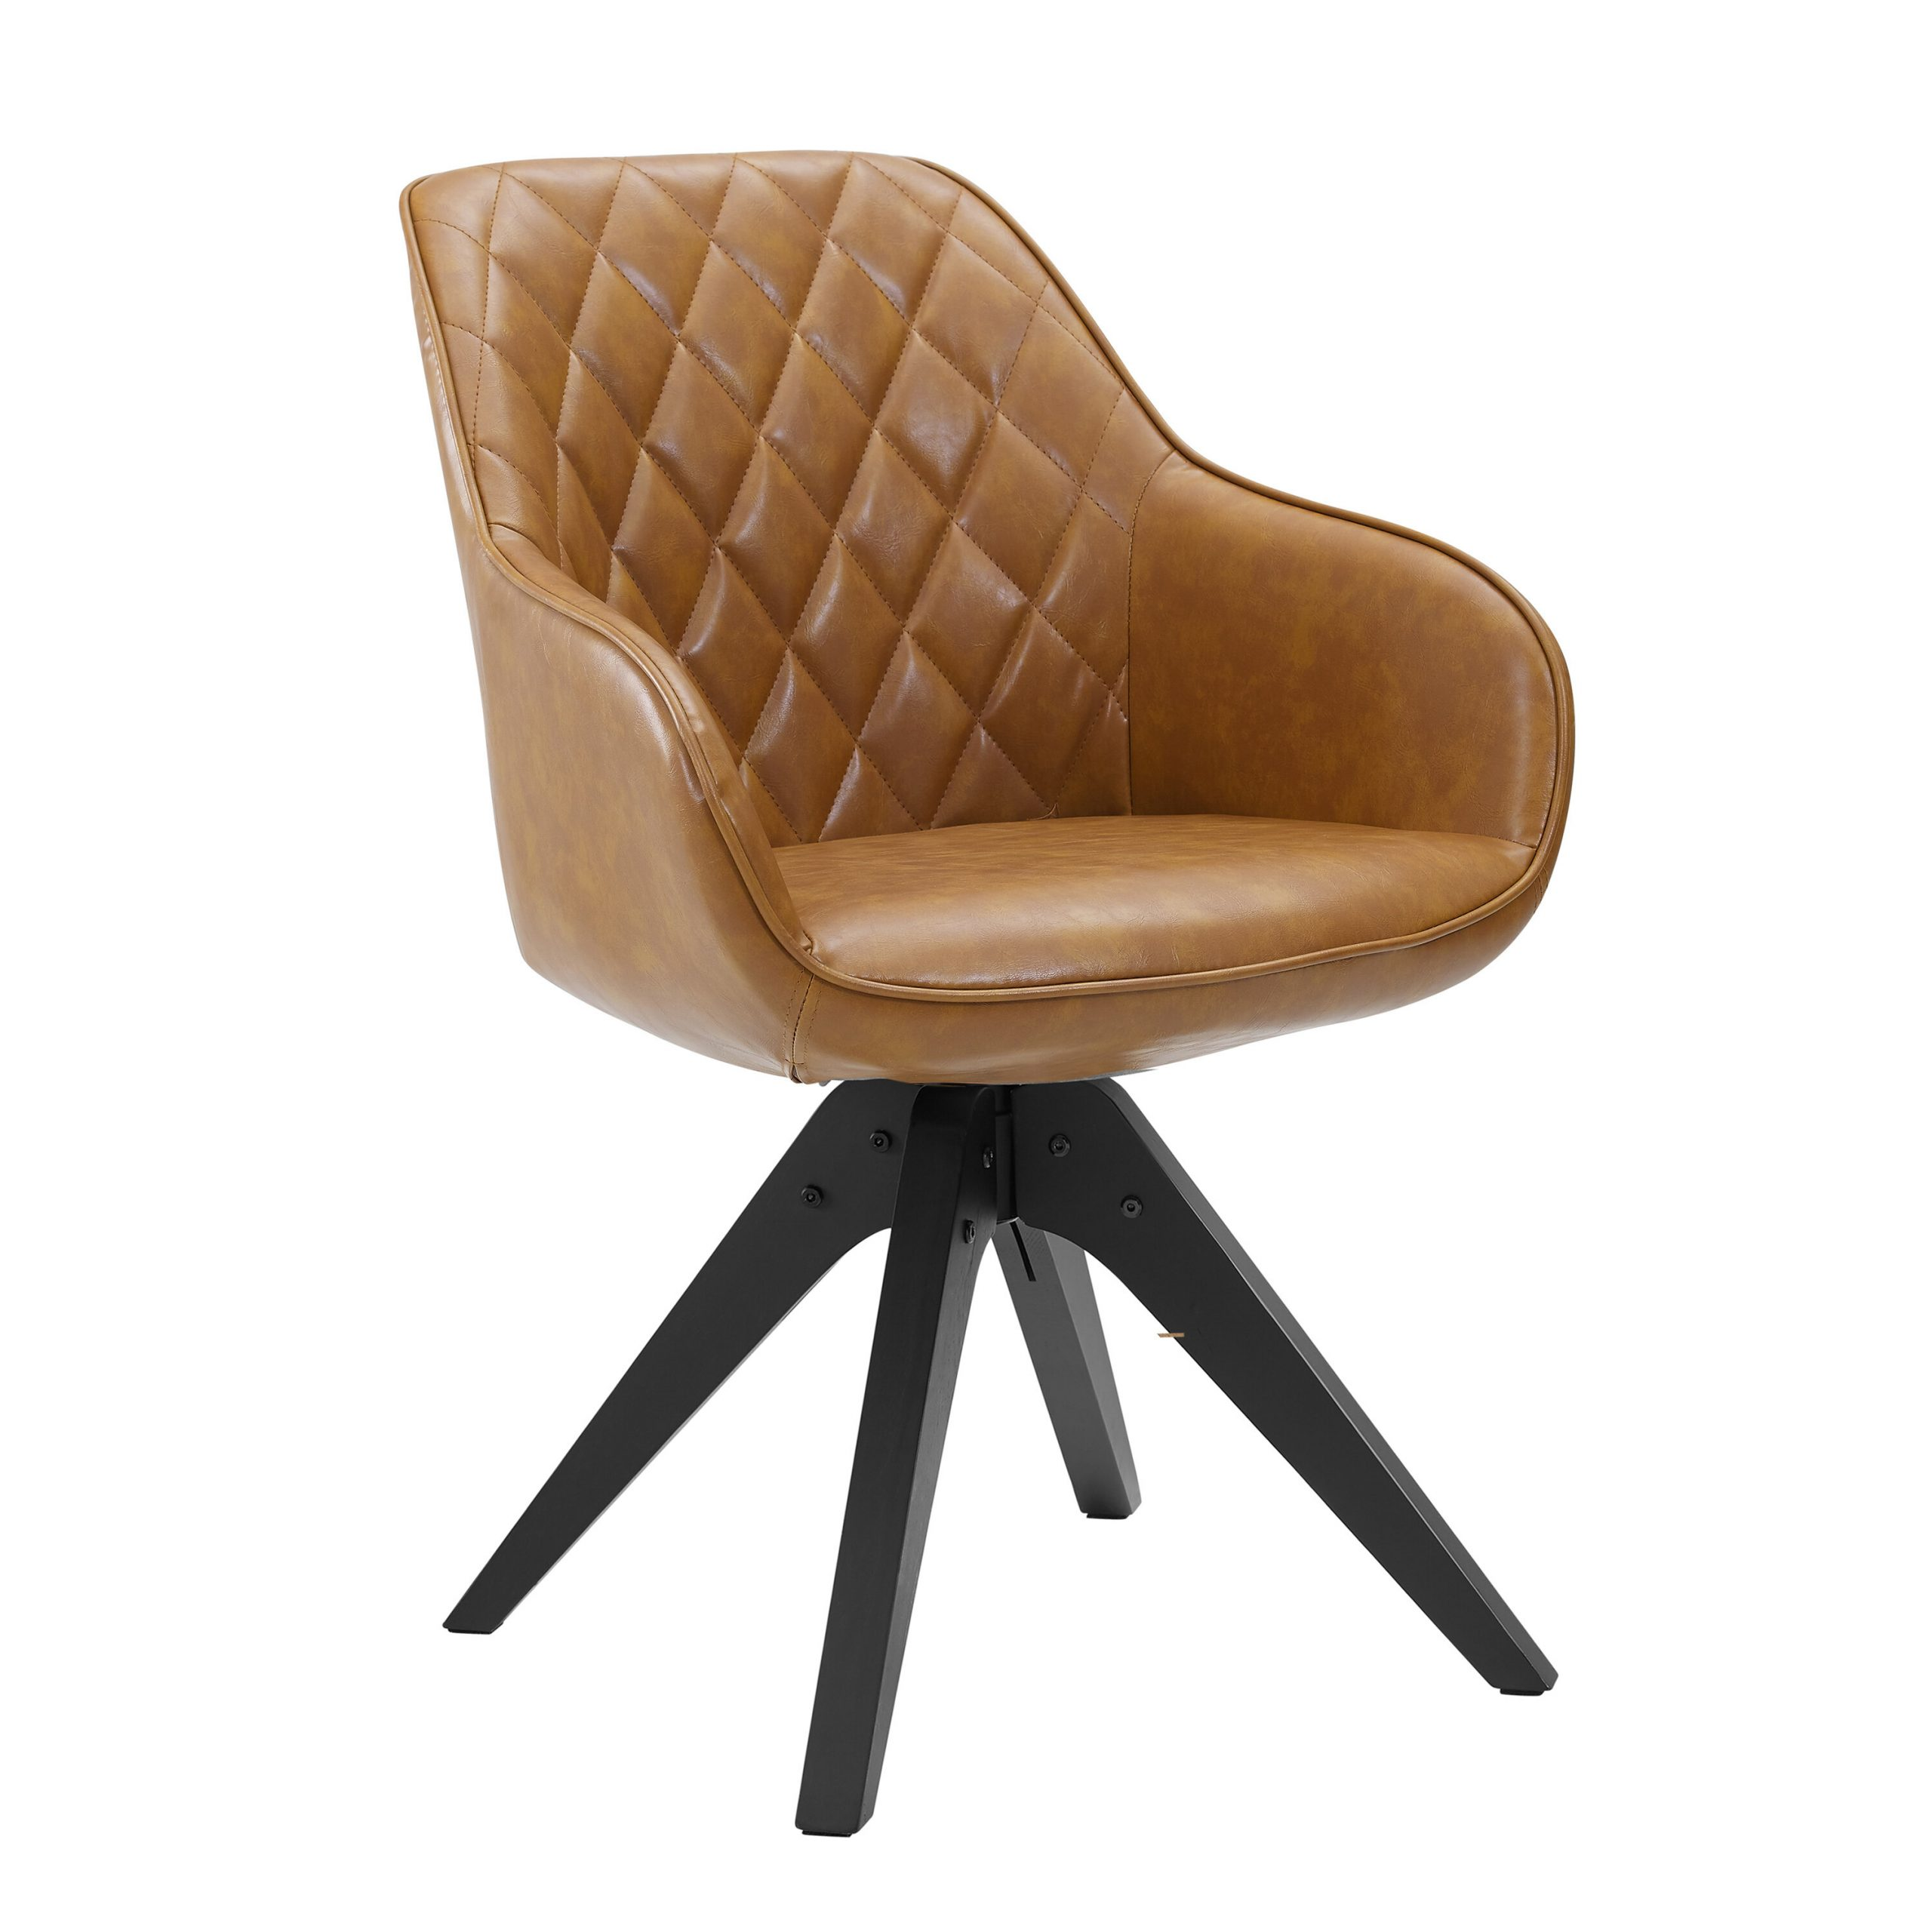 Metz Swivel Side Chair With Regard To Brister Swivel Side Chairs (View 6 of 15)